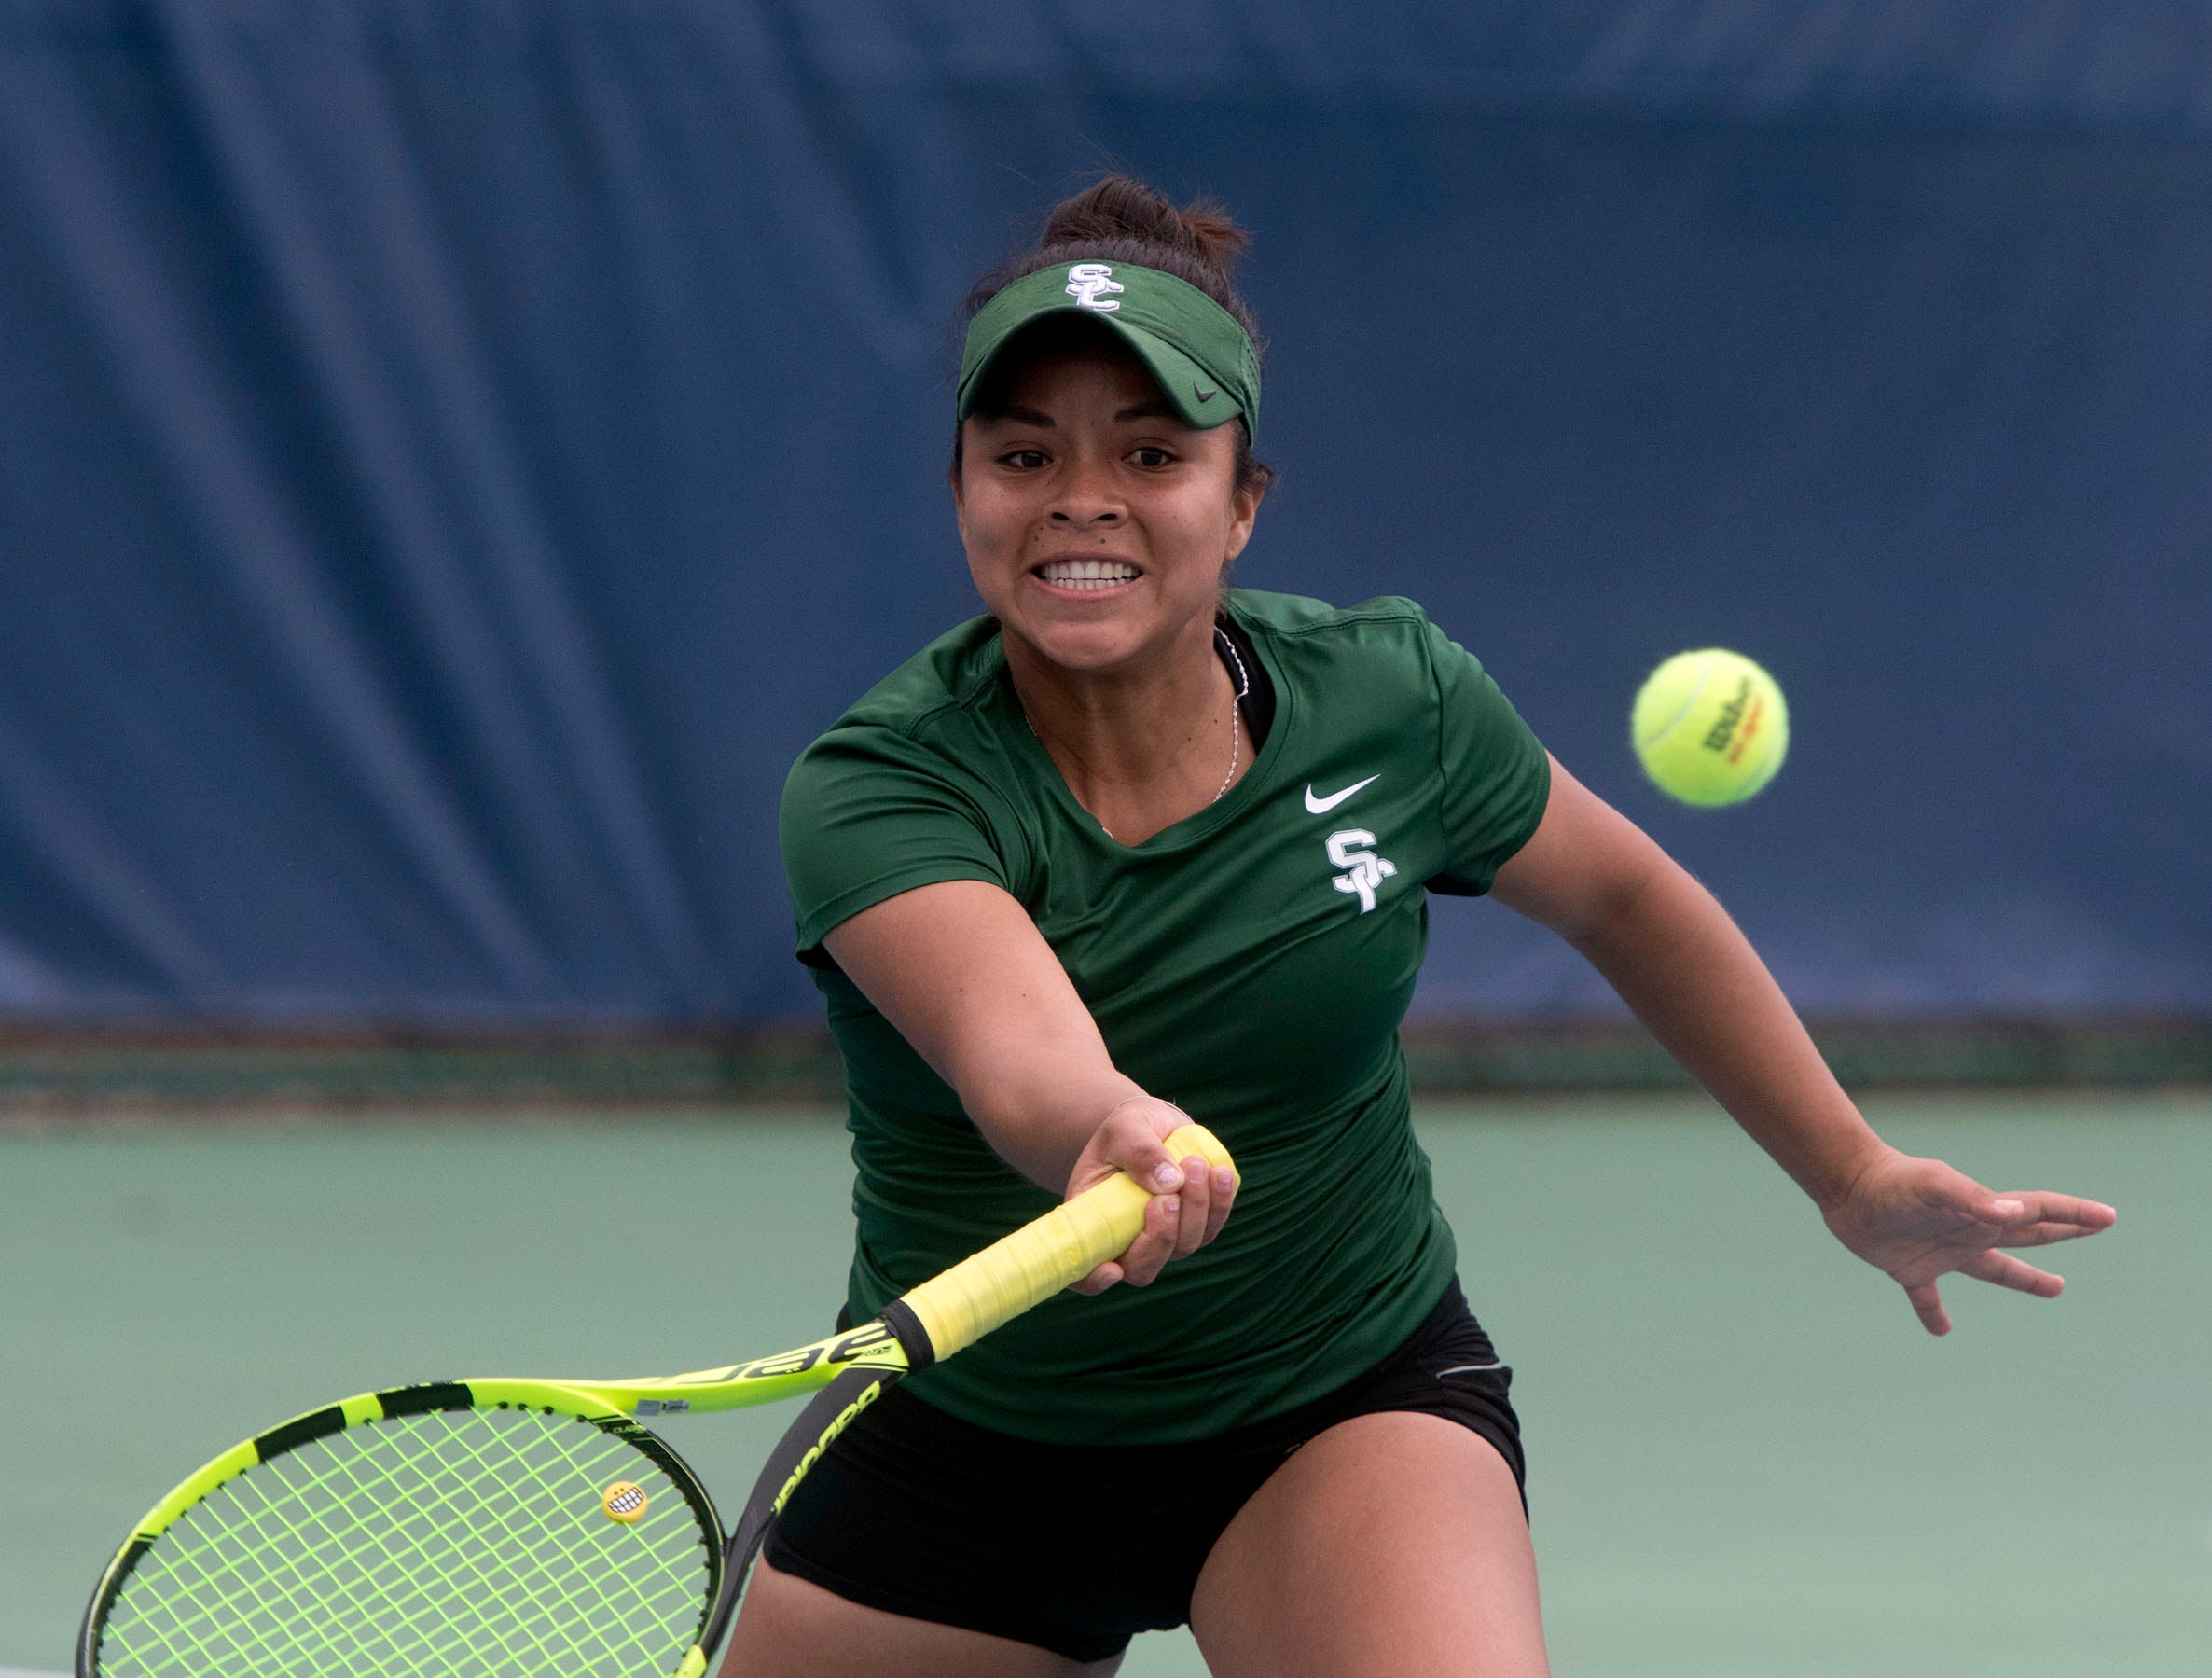 Patricia Panta from Seward County Community College, returns the serve from the Abraham Baldwin Agricultural College team during doubles play in the Western Gate Tennis Invitational tournament at UWF on Monday, March 11, 2019. Seward won the match 8-3.